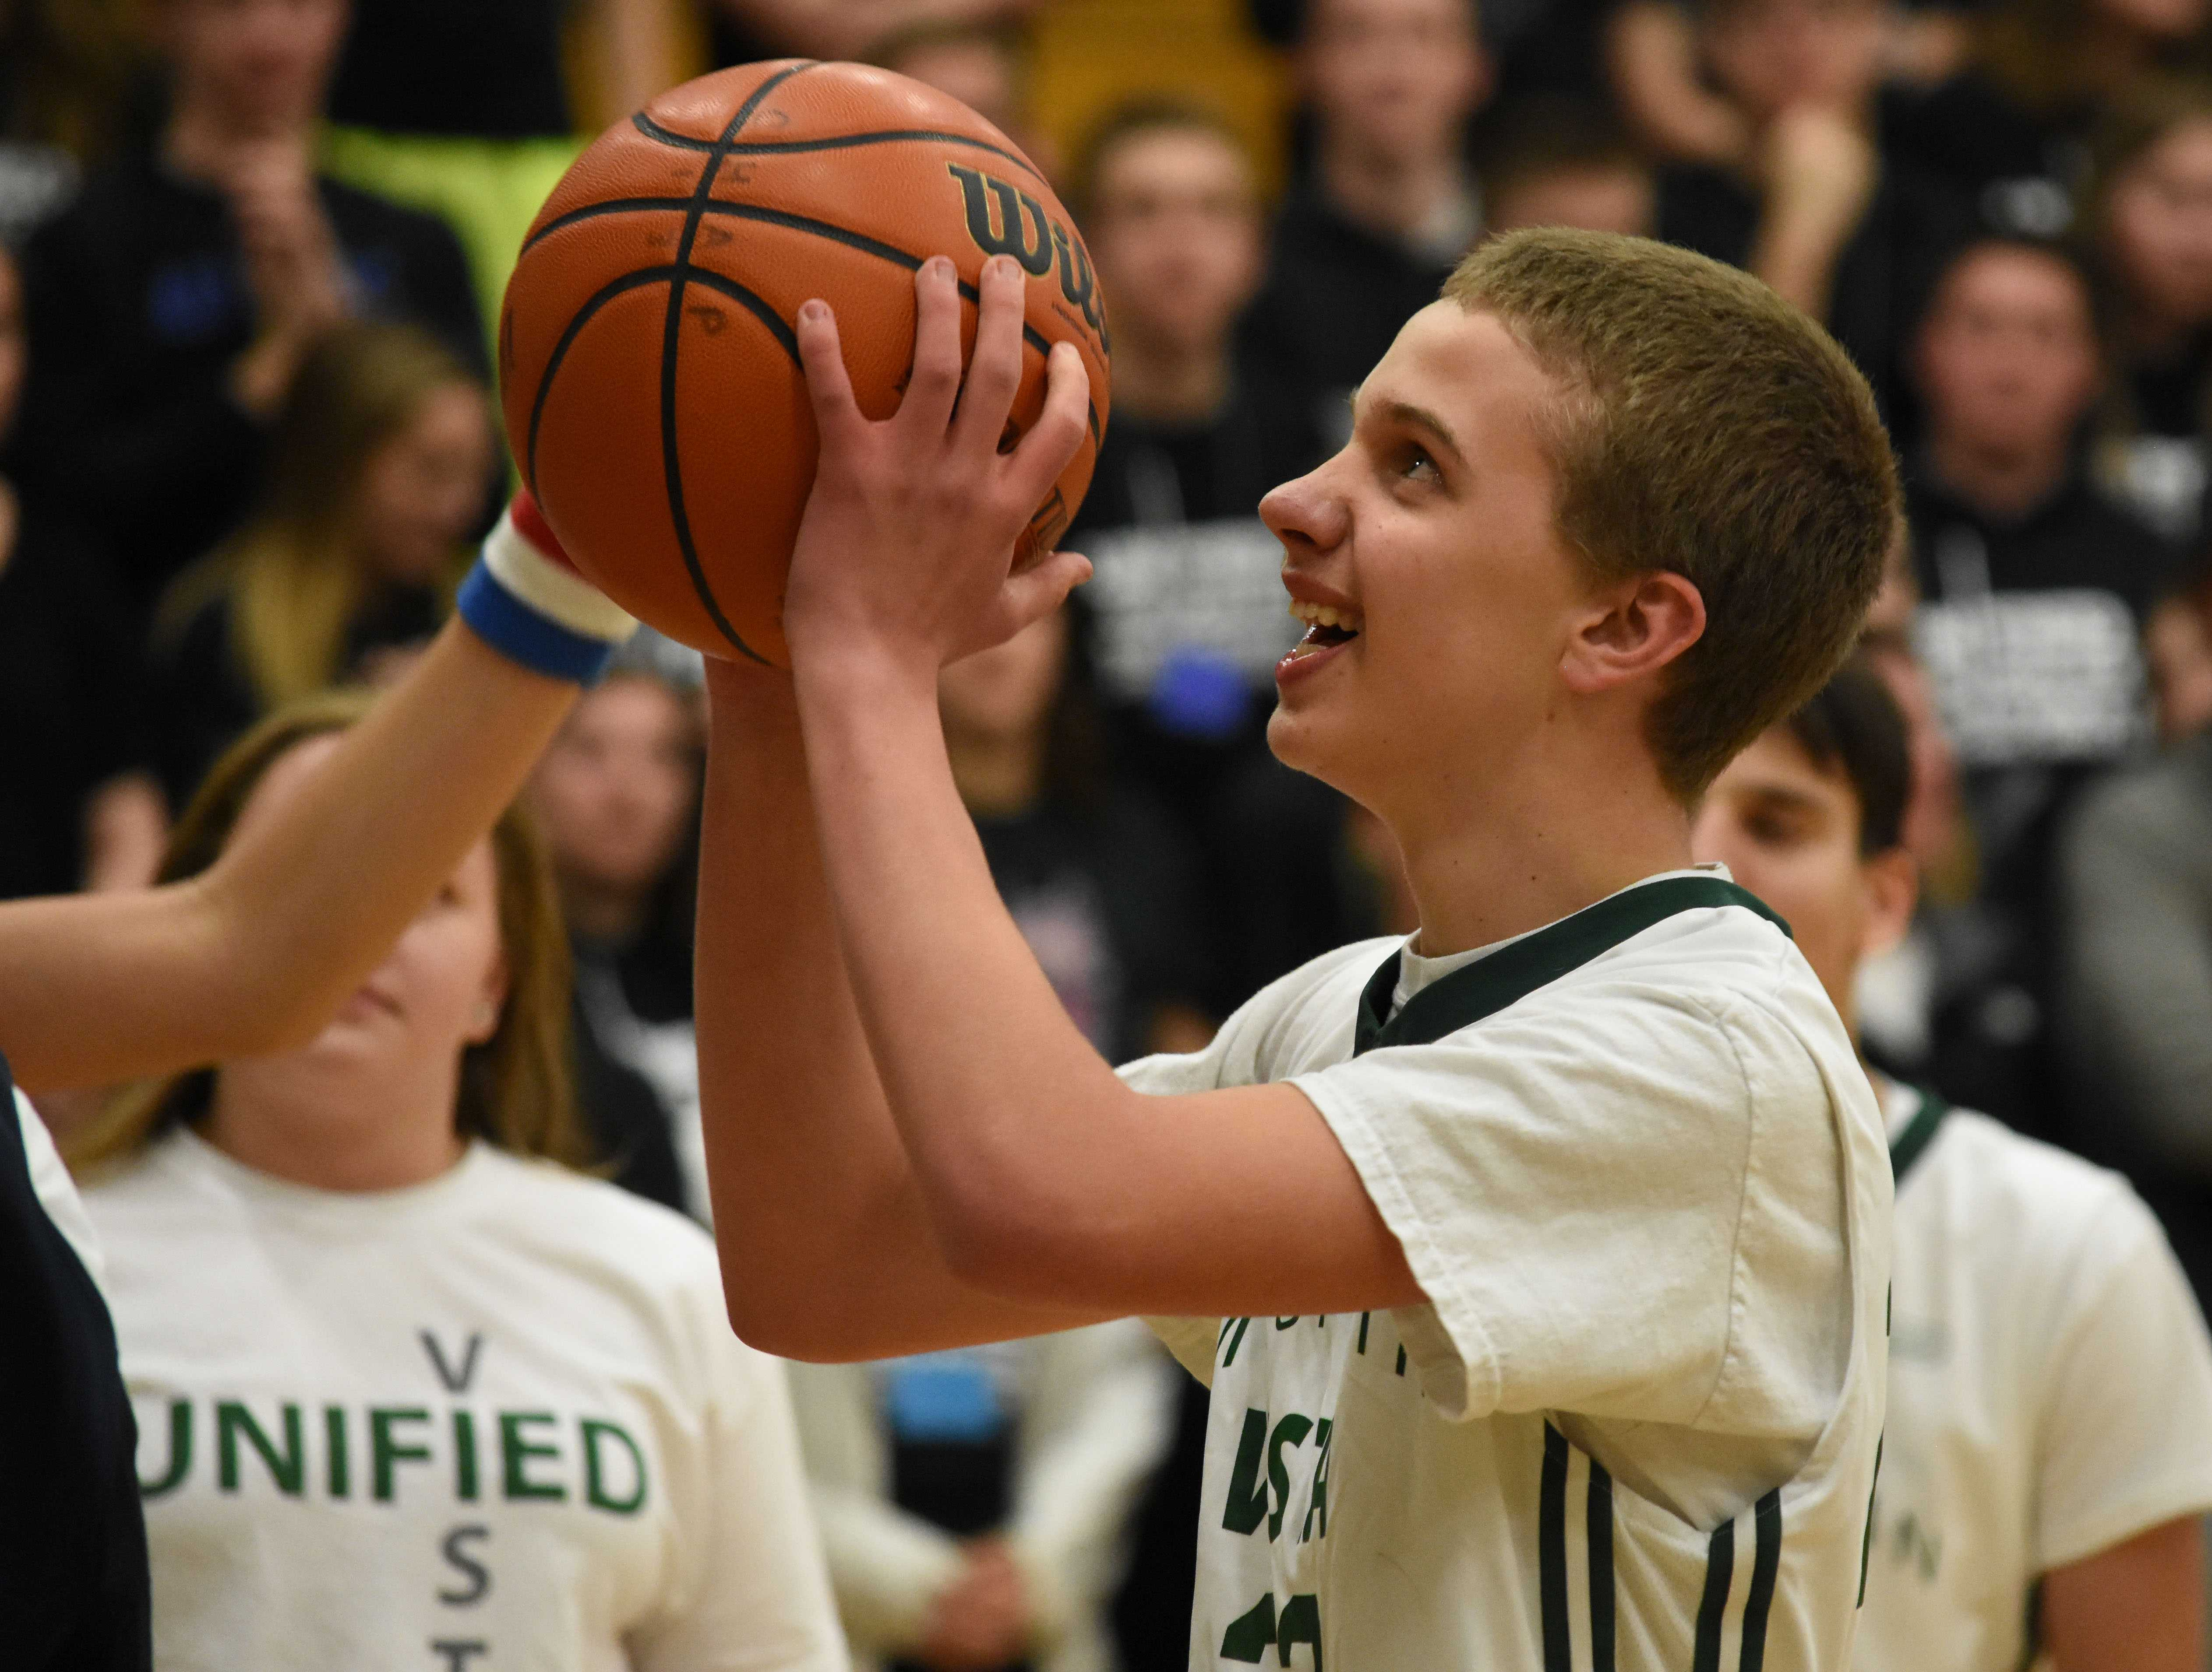 Unified wraps up another exciting basketball season